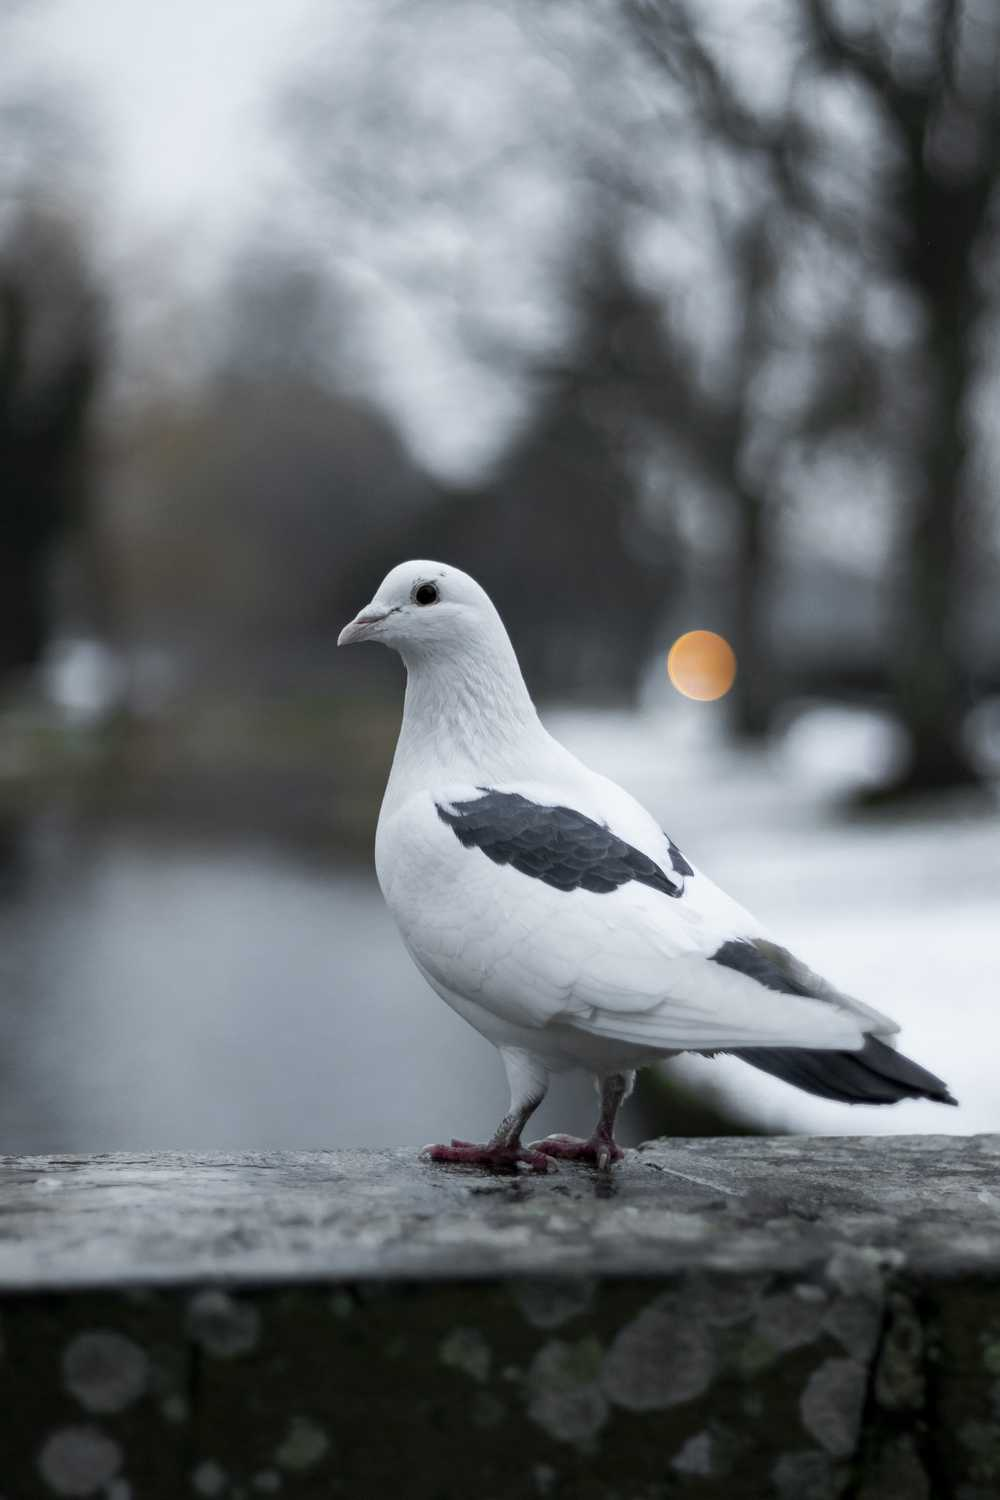 tilt shift focus photography of white pigeon